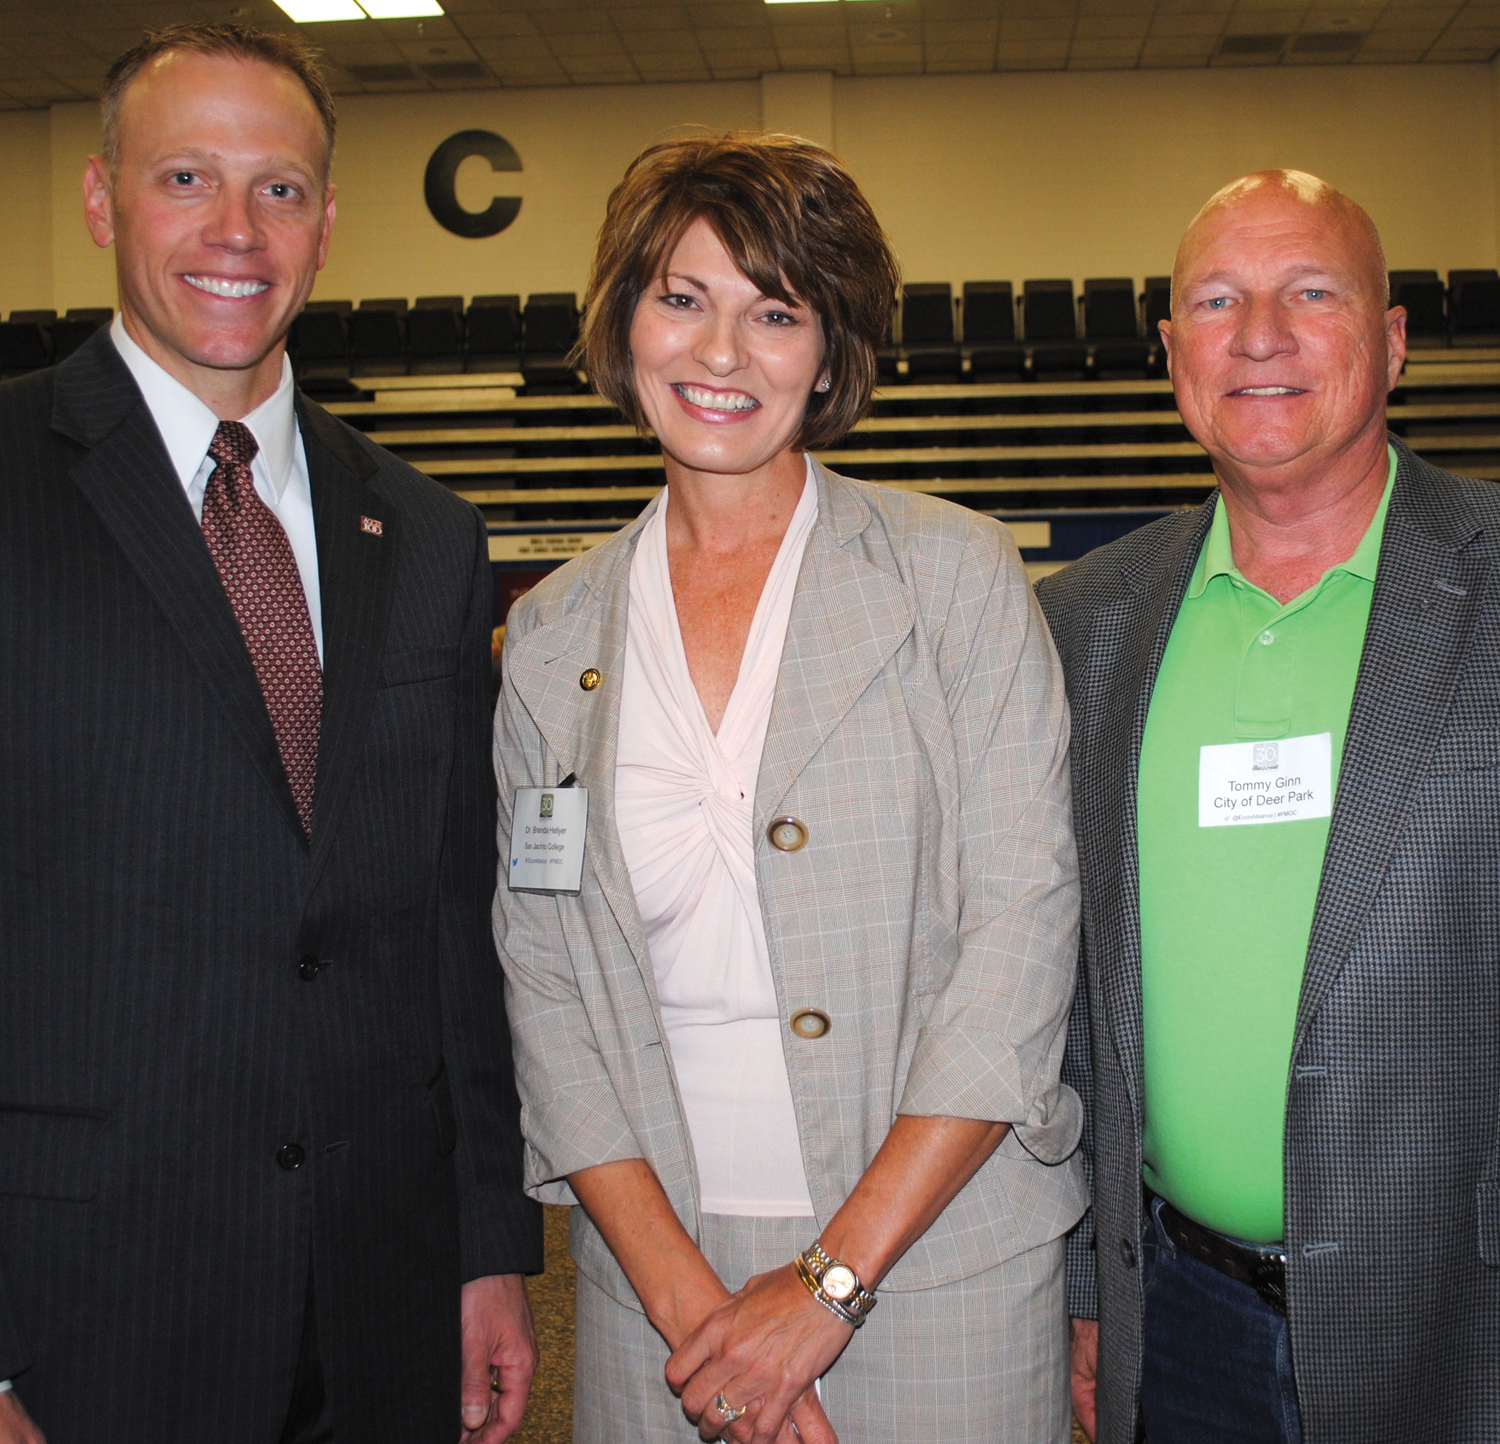 Texas Railroad Commissioner Ryan Sitton of Friendswood, left, receives compliments on his speech at the Economic Alliance conference from San Jacinto College Chancellor Dr. Brenda Hellyer and Deer Park Councilman Tommy Ginn.